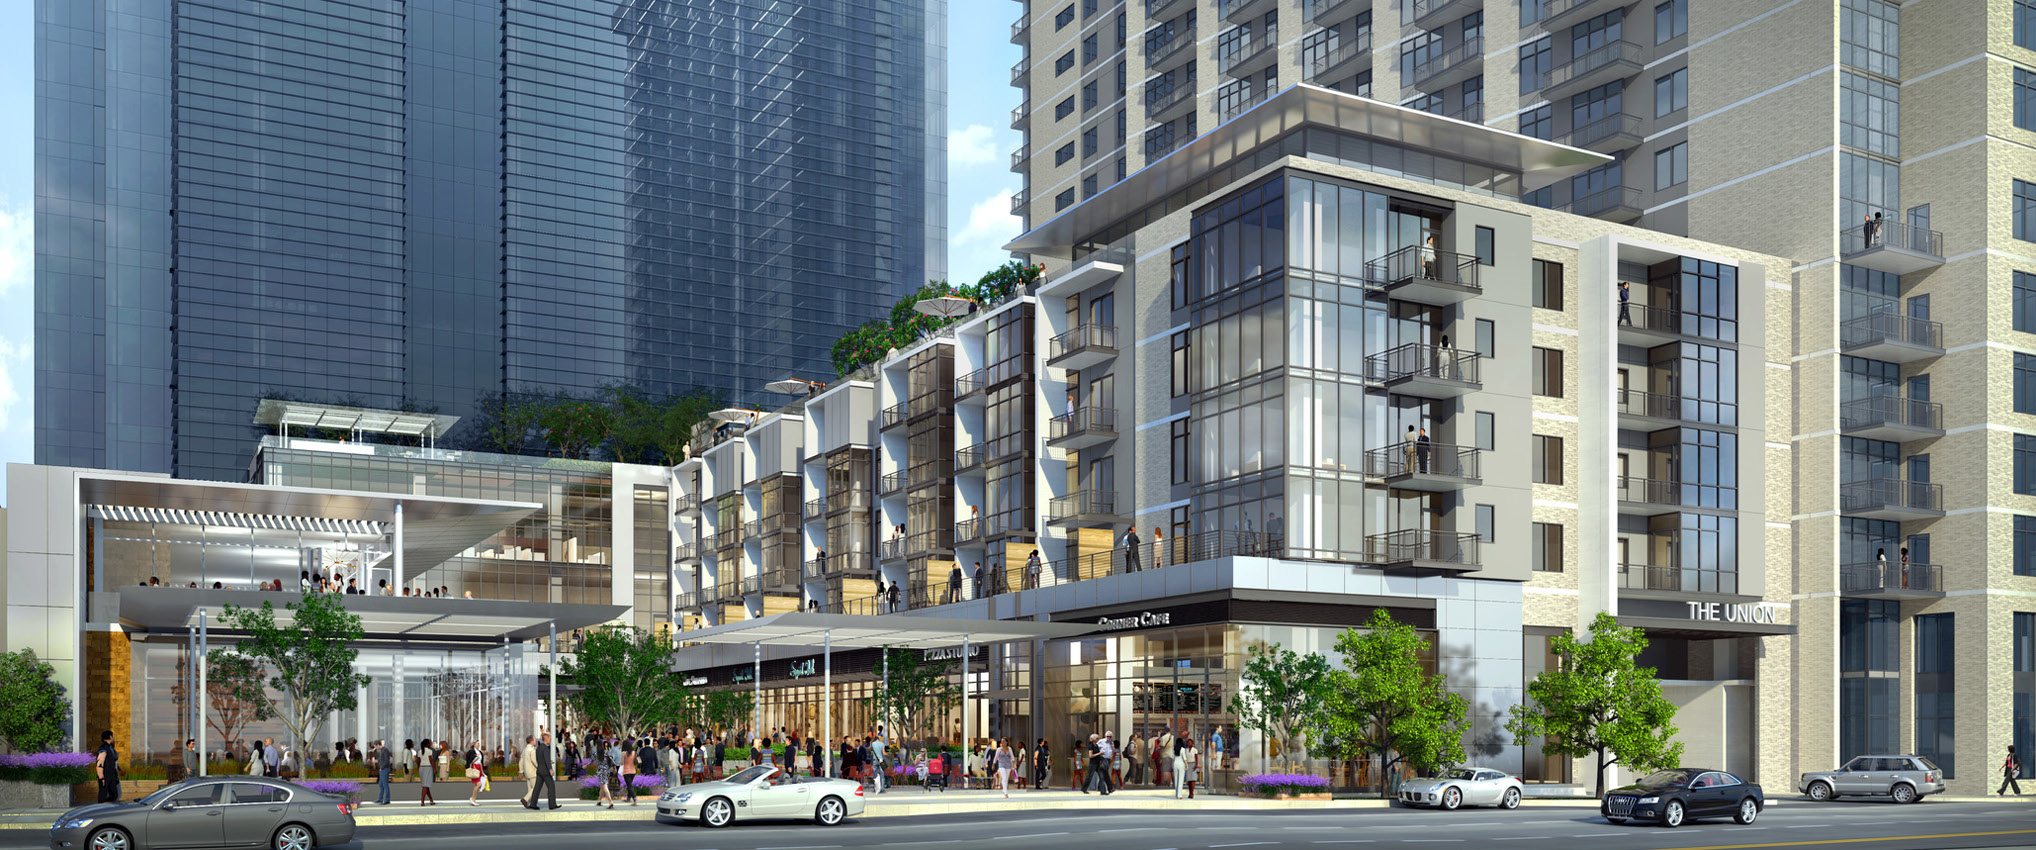 The Union by HKS Brings Mixed-Use to Uptown Dallas